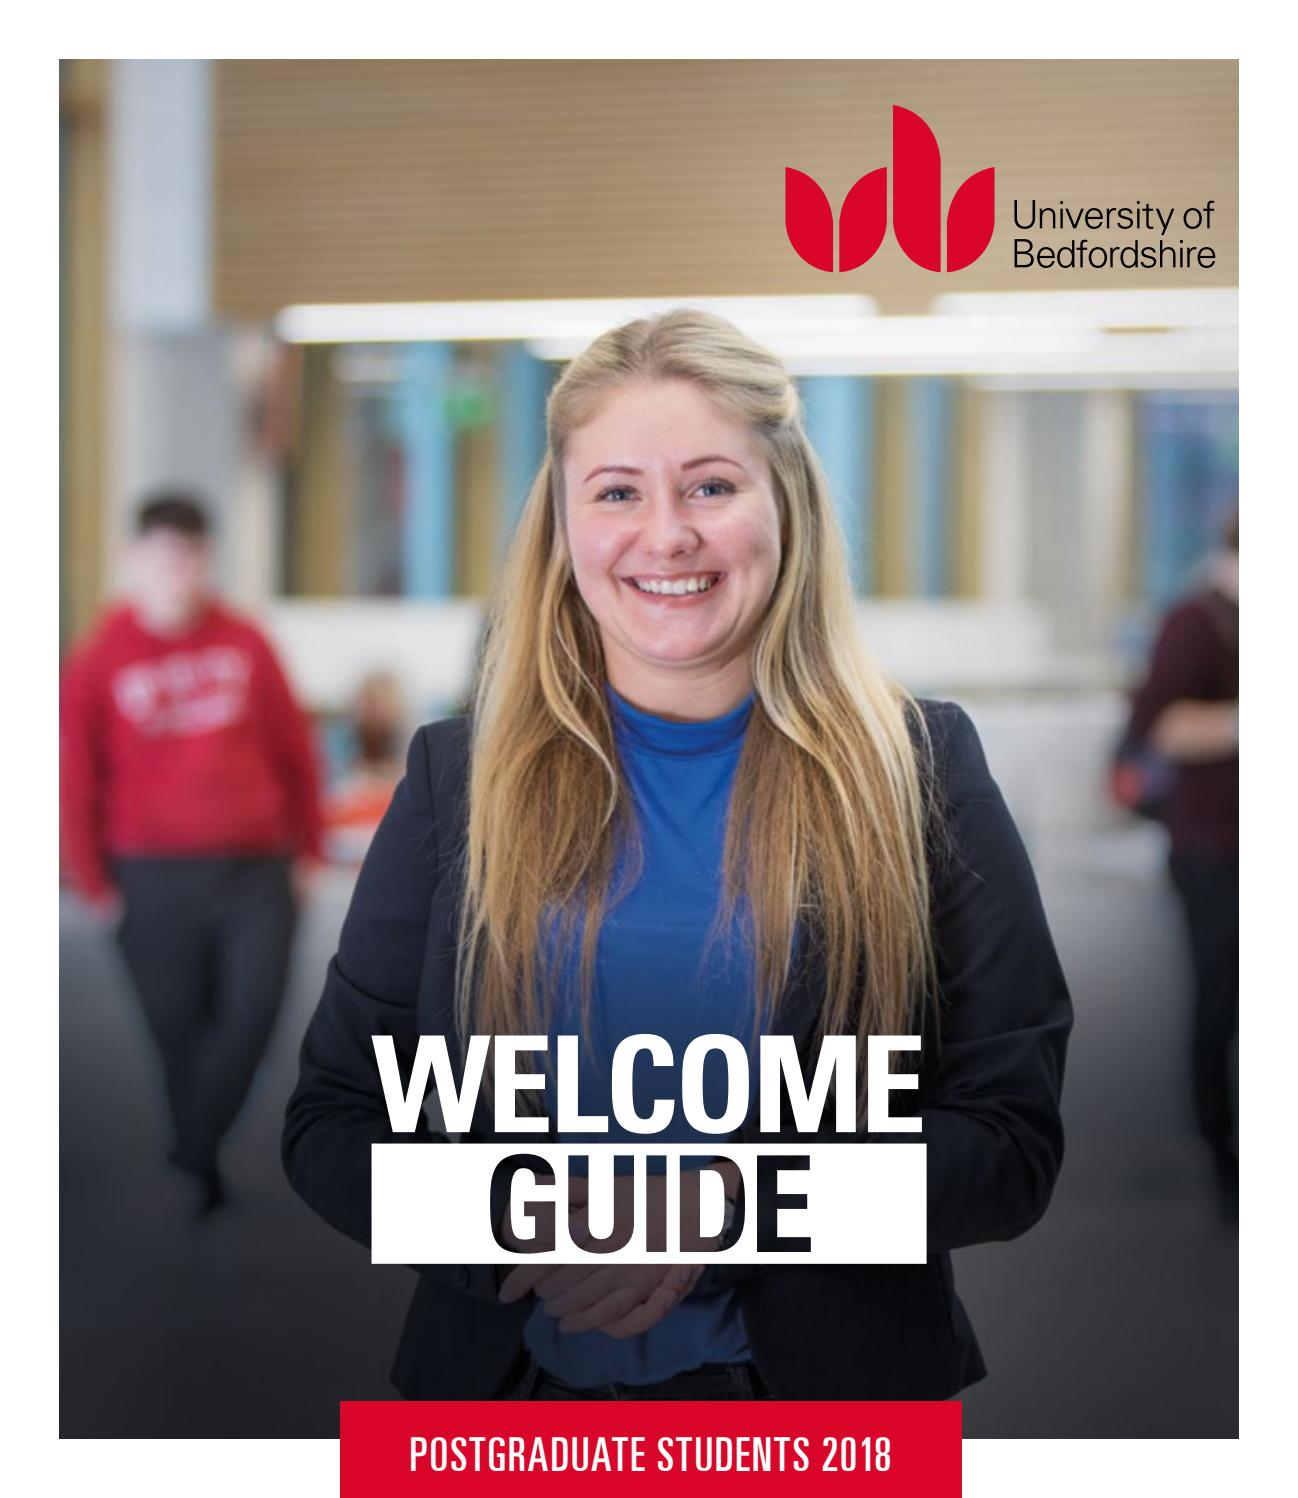 Postgraduate Student Welcome Guide 2018 By University Of